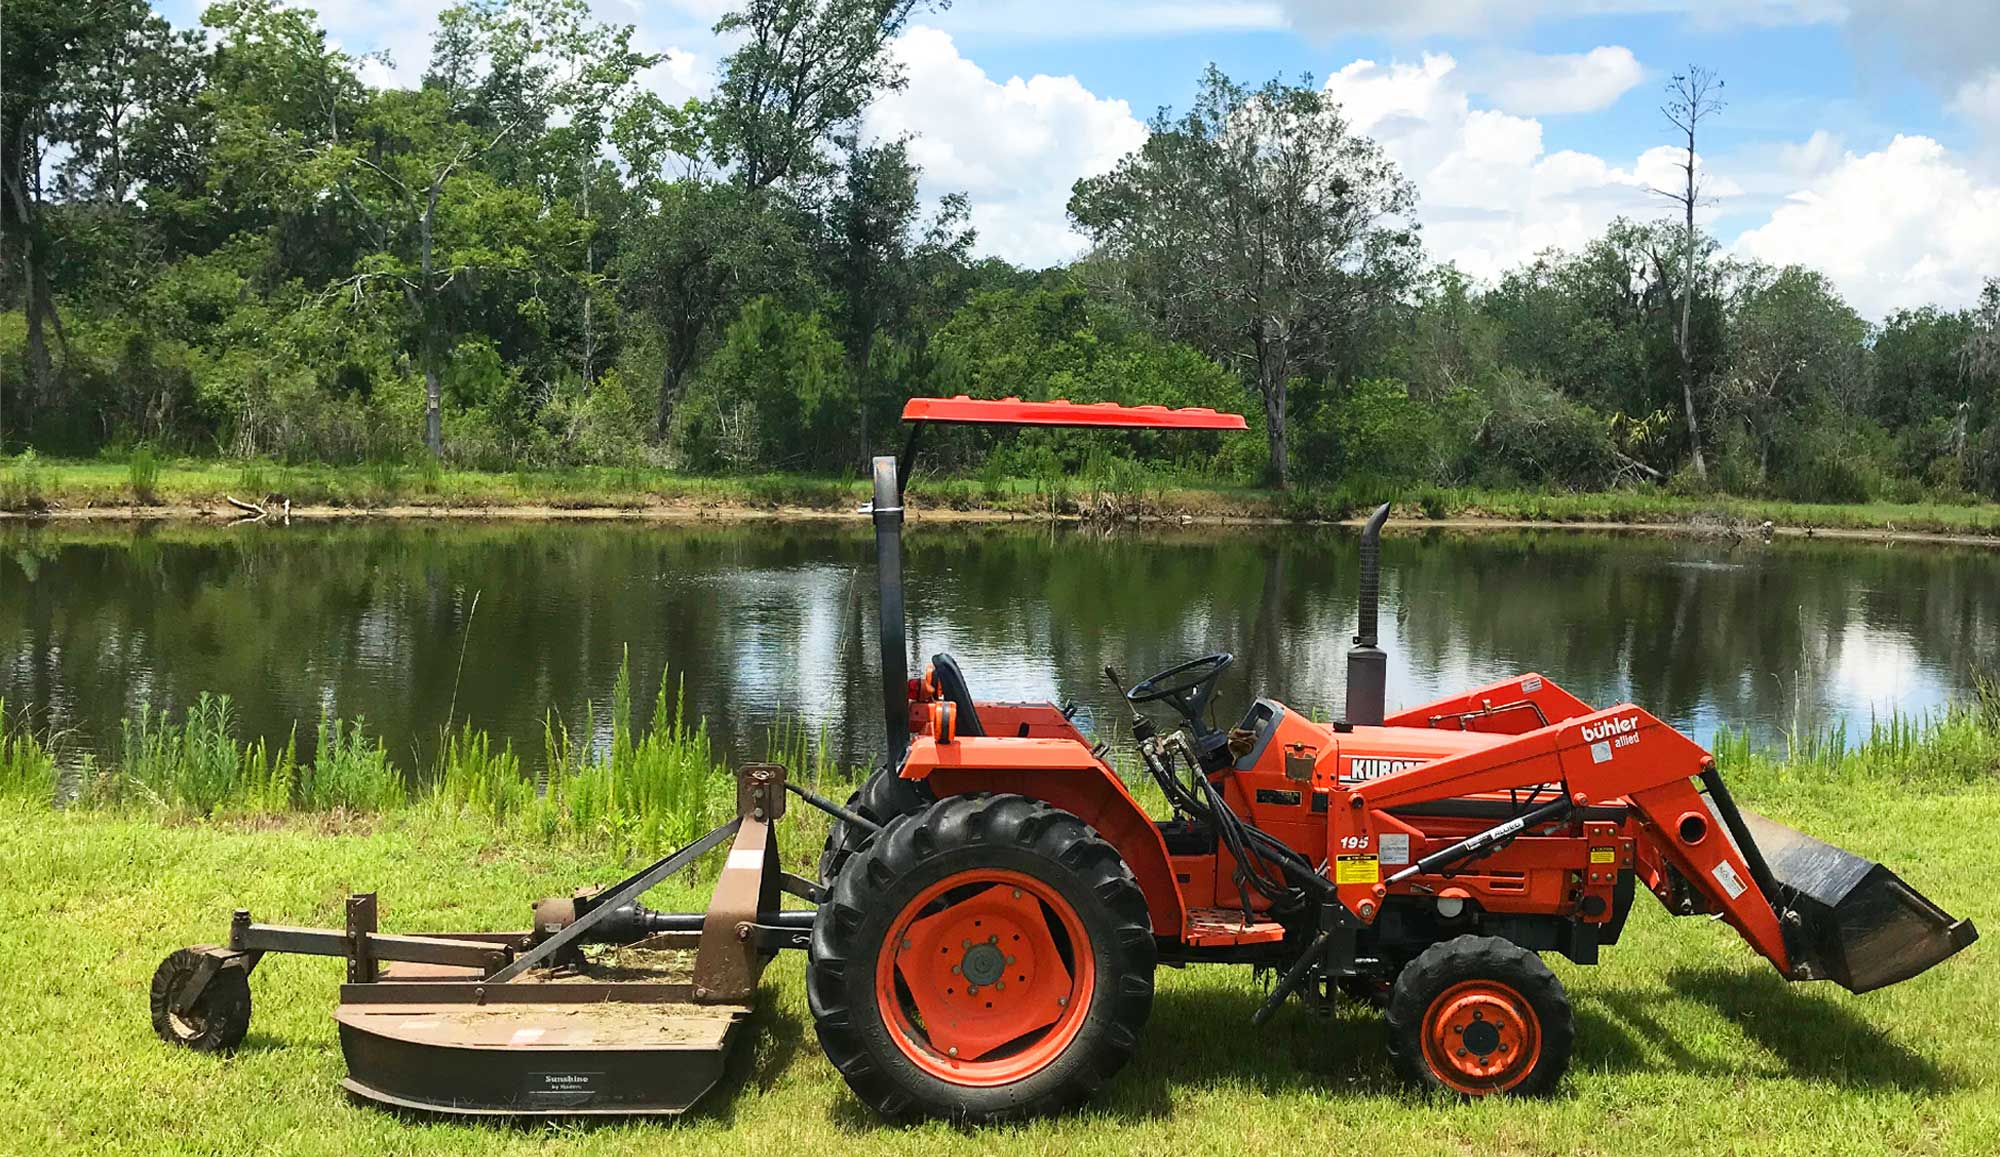 Tractor canopies and mower canopies  by SunGuard USA are cooler and protect you from the sun.